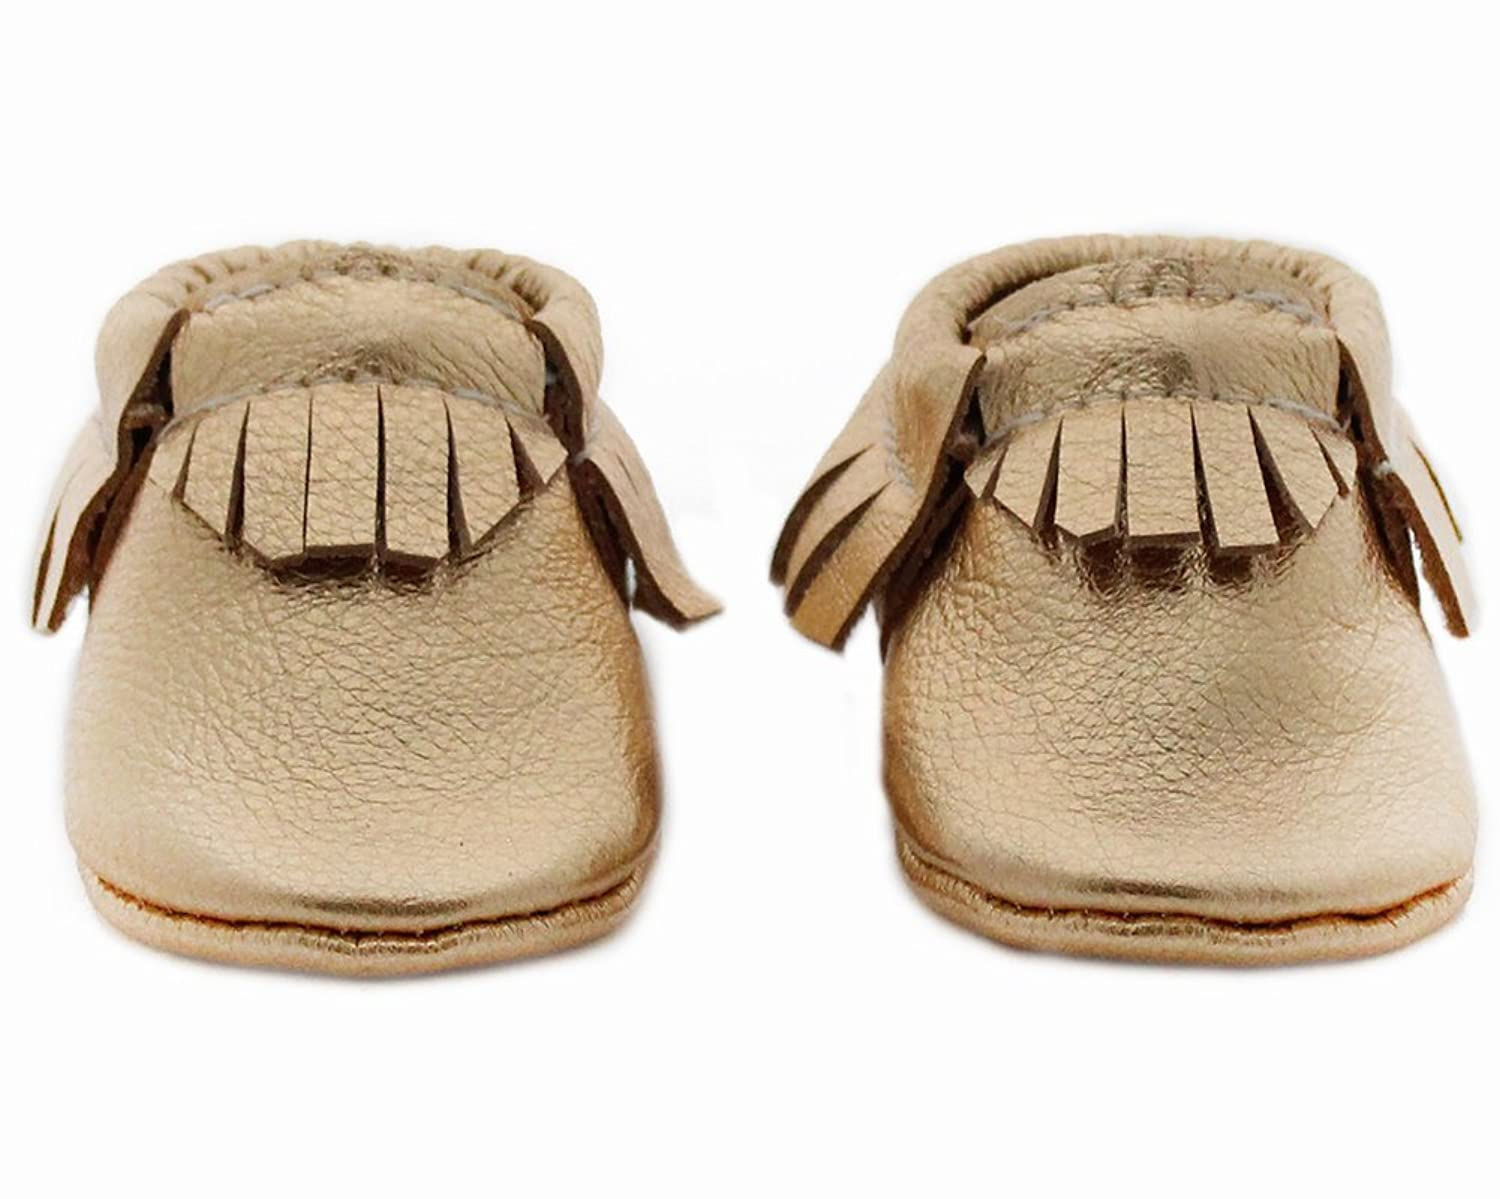 Baby Moccasins, The Coral Pear Classic Moccasin, Genuine Leather, (Infant, Toddler, Kids) baby moccasins the coral pear classic moccasin genuine leather infant toddler kids